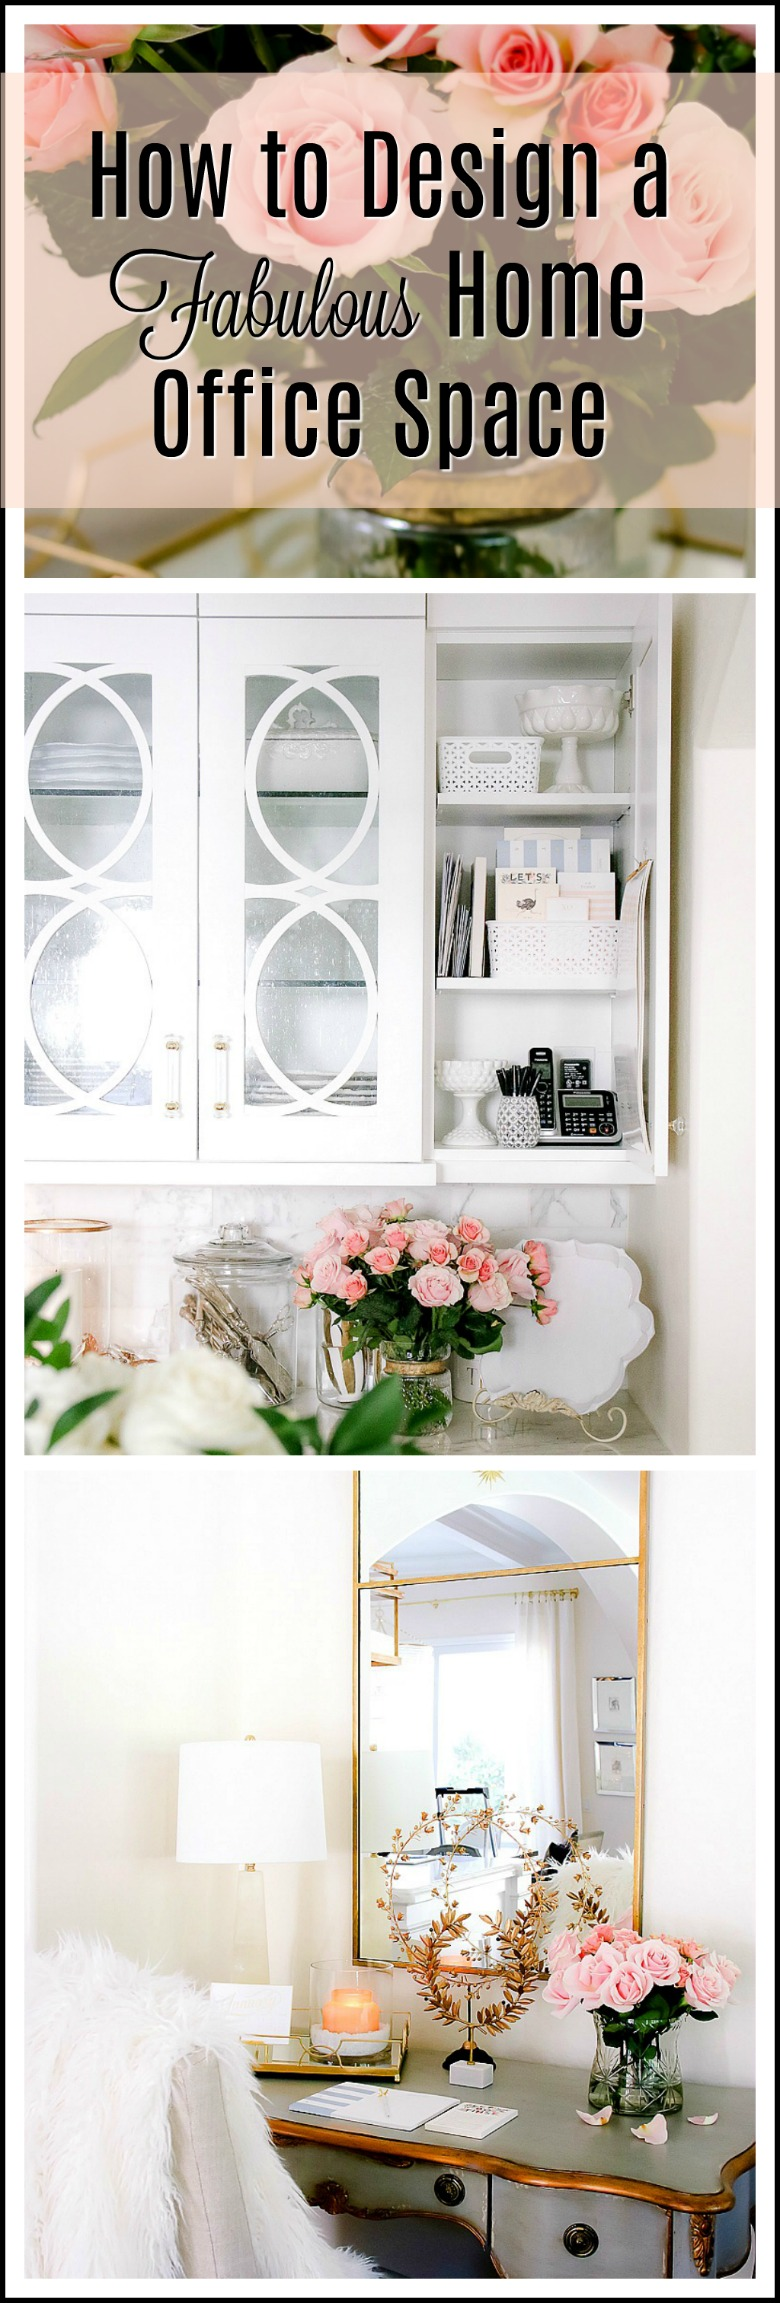 How to Design a Fabulous Home Office Space - Randi Garrett Design